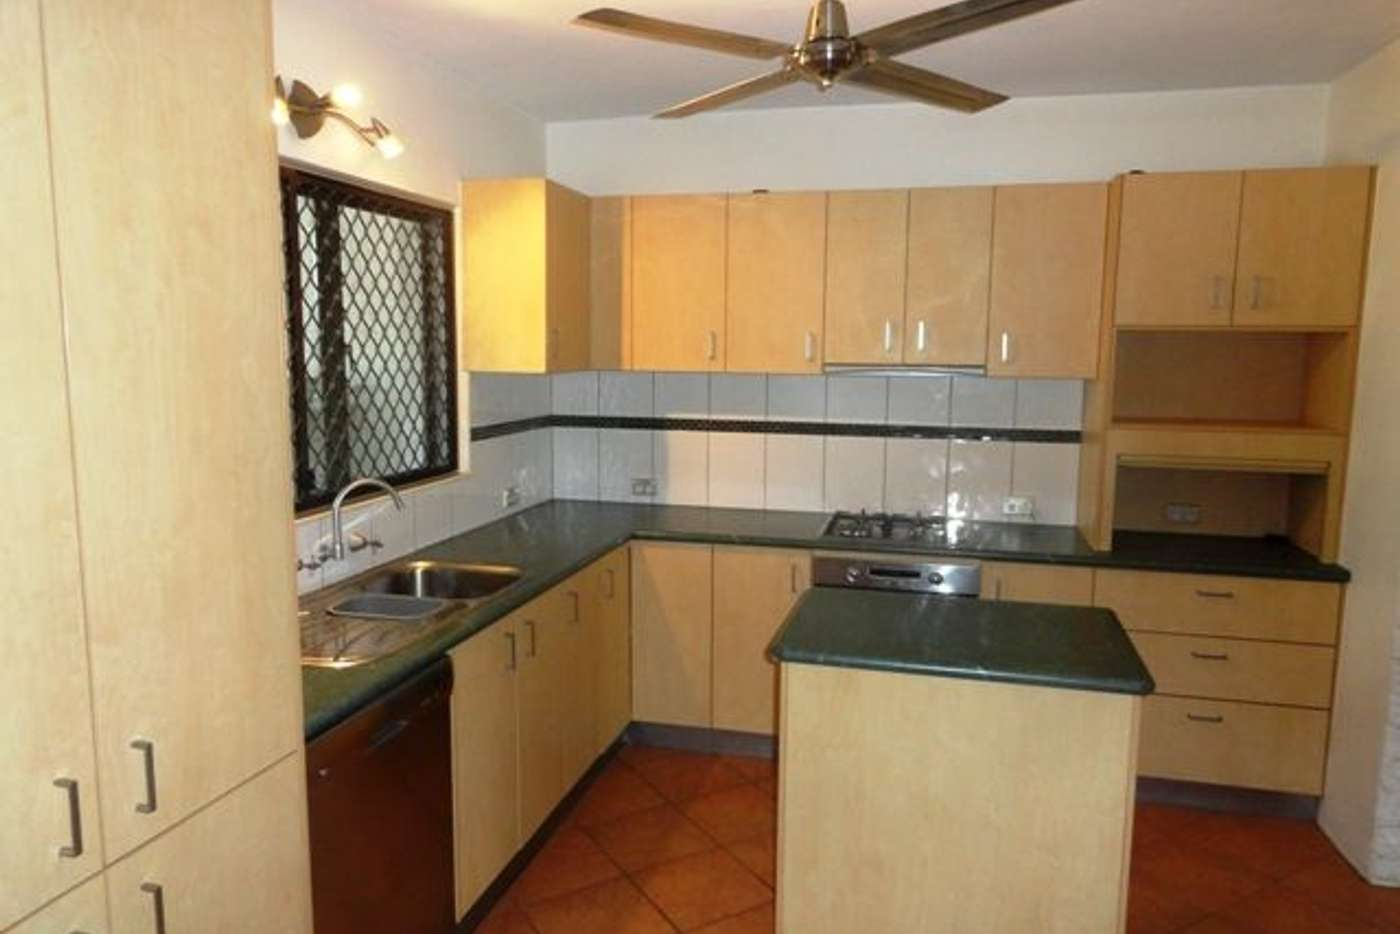 Main view of Homely townhouse listing, 5/10 Banyan Street, Fannie Bay NT 820